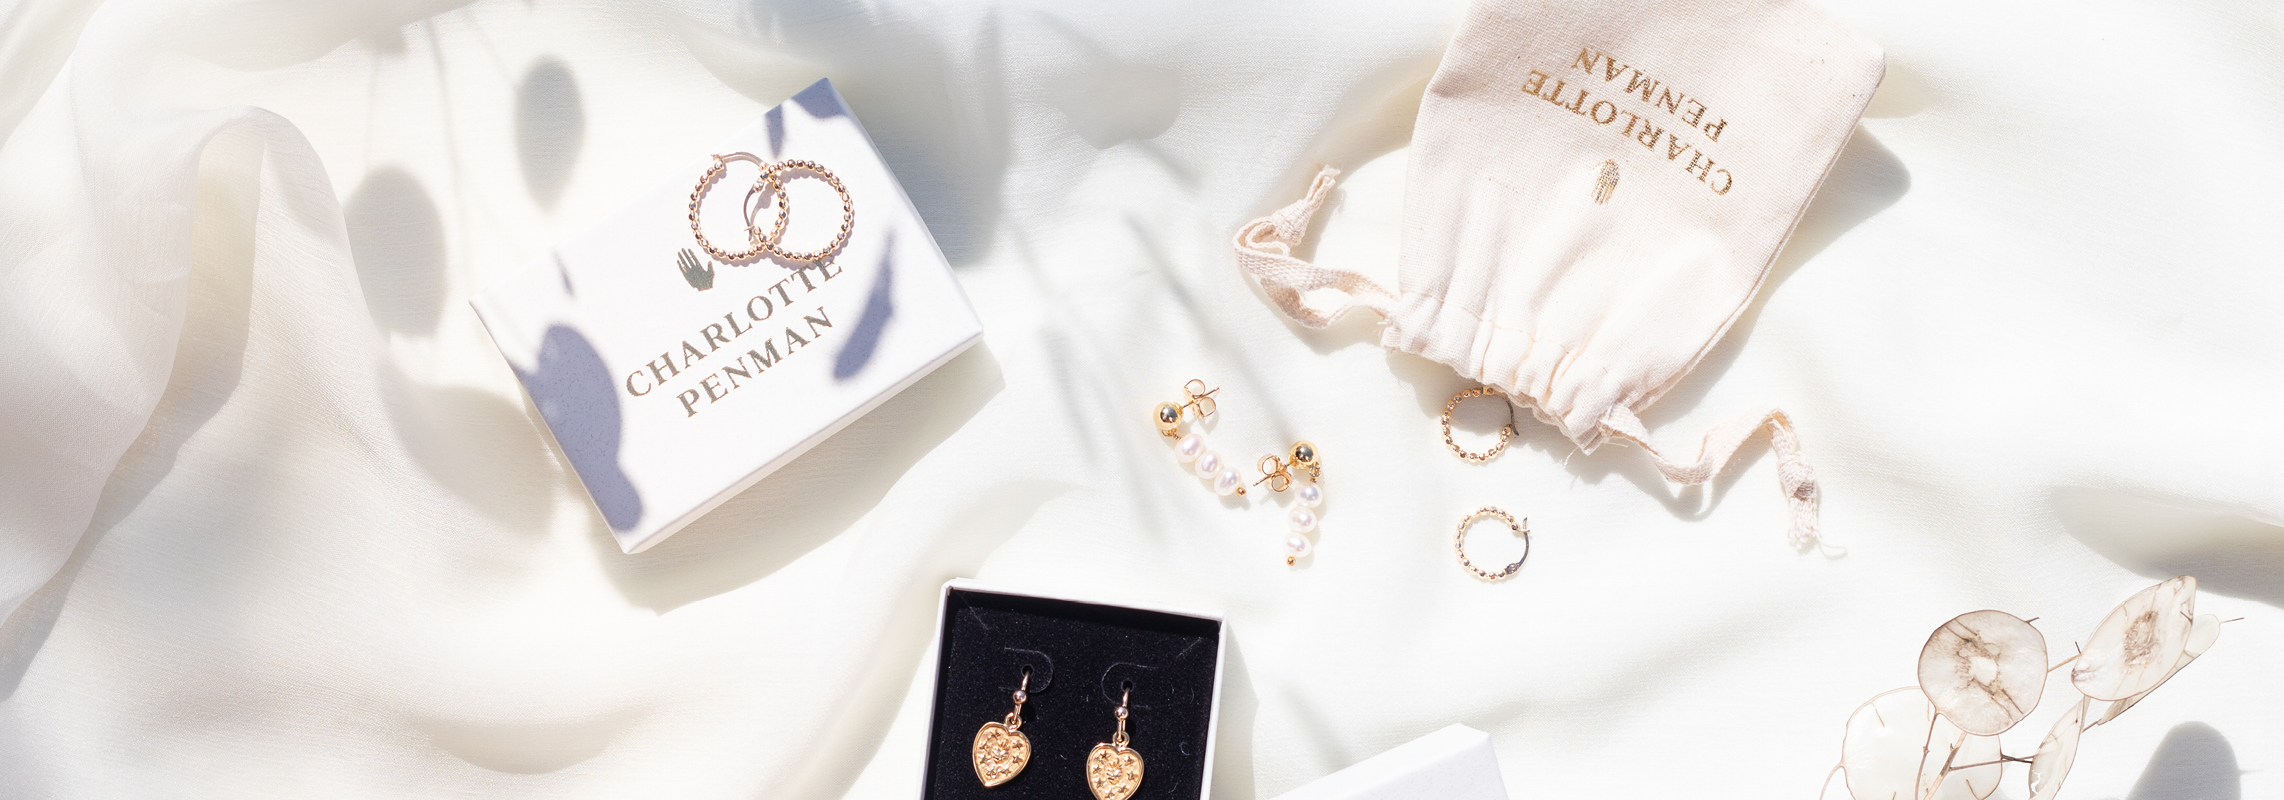 Shop our Mother's Day collection